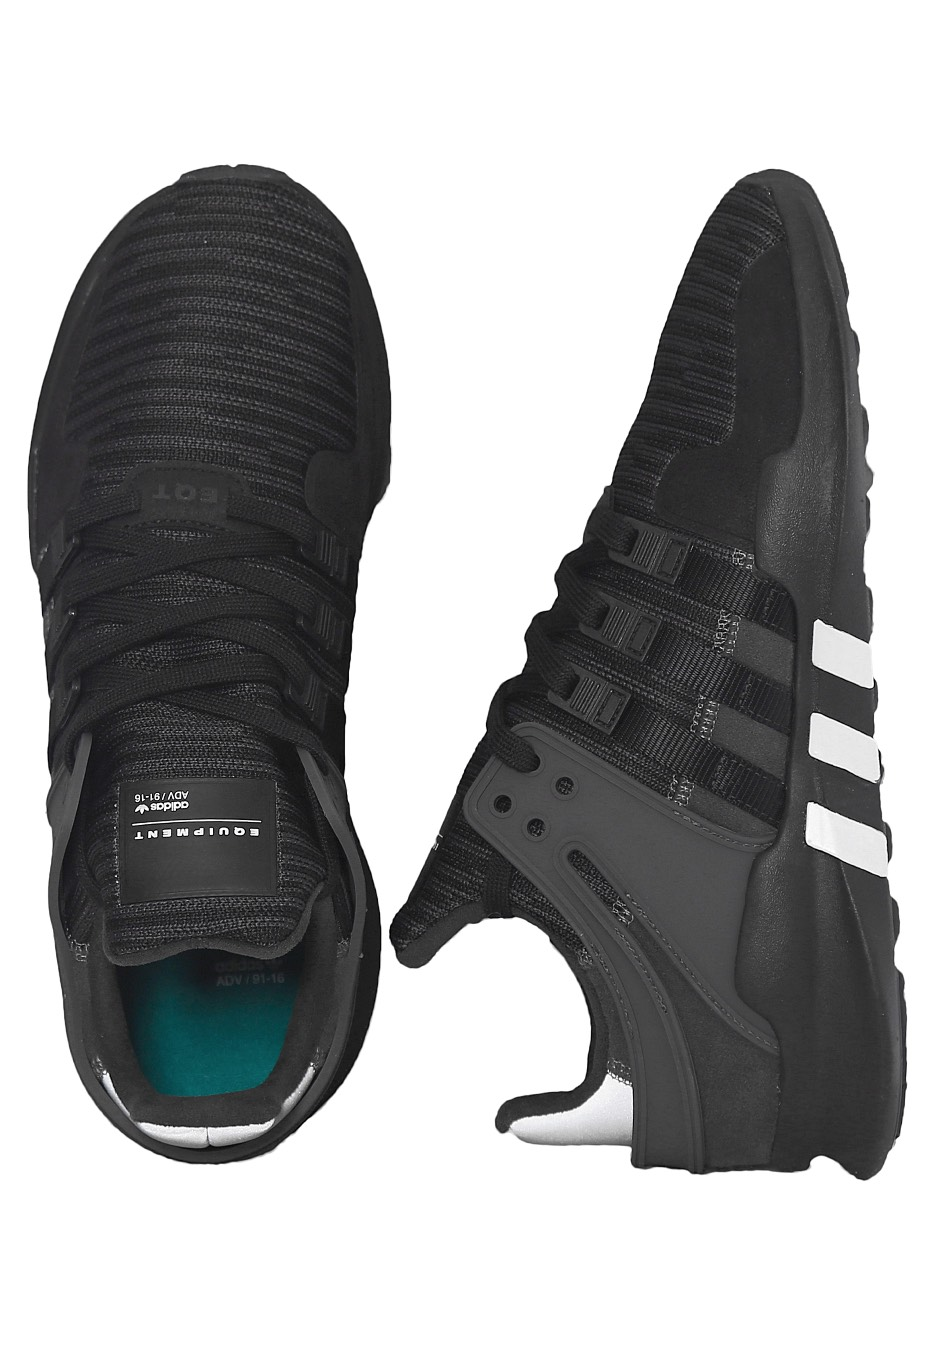 reputable site 5d99b 7628b Adidas - EQT Support ADV Core BlackUtility BlackDgh Solid Grey - Shoes -  Impericon.com Worldwide